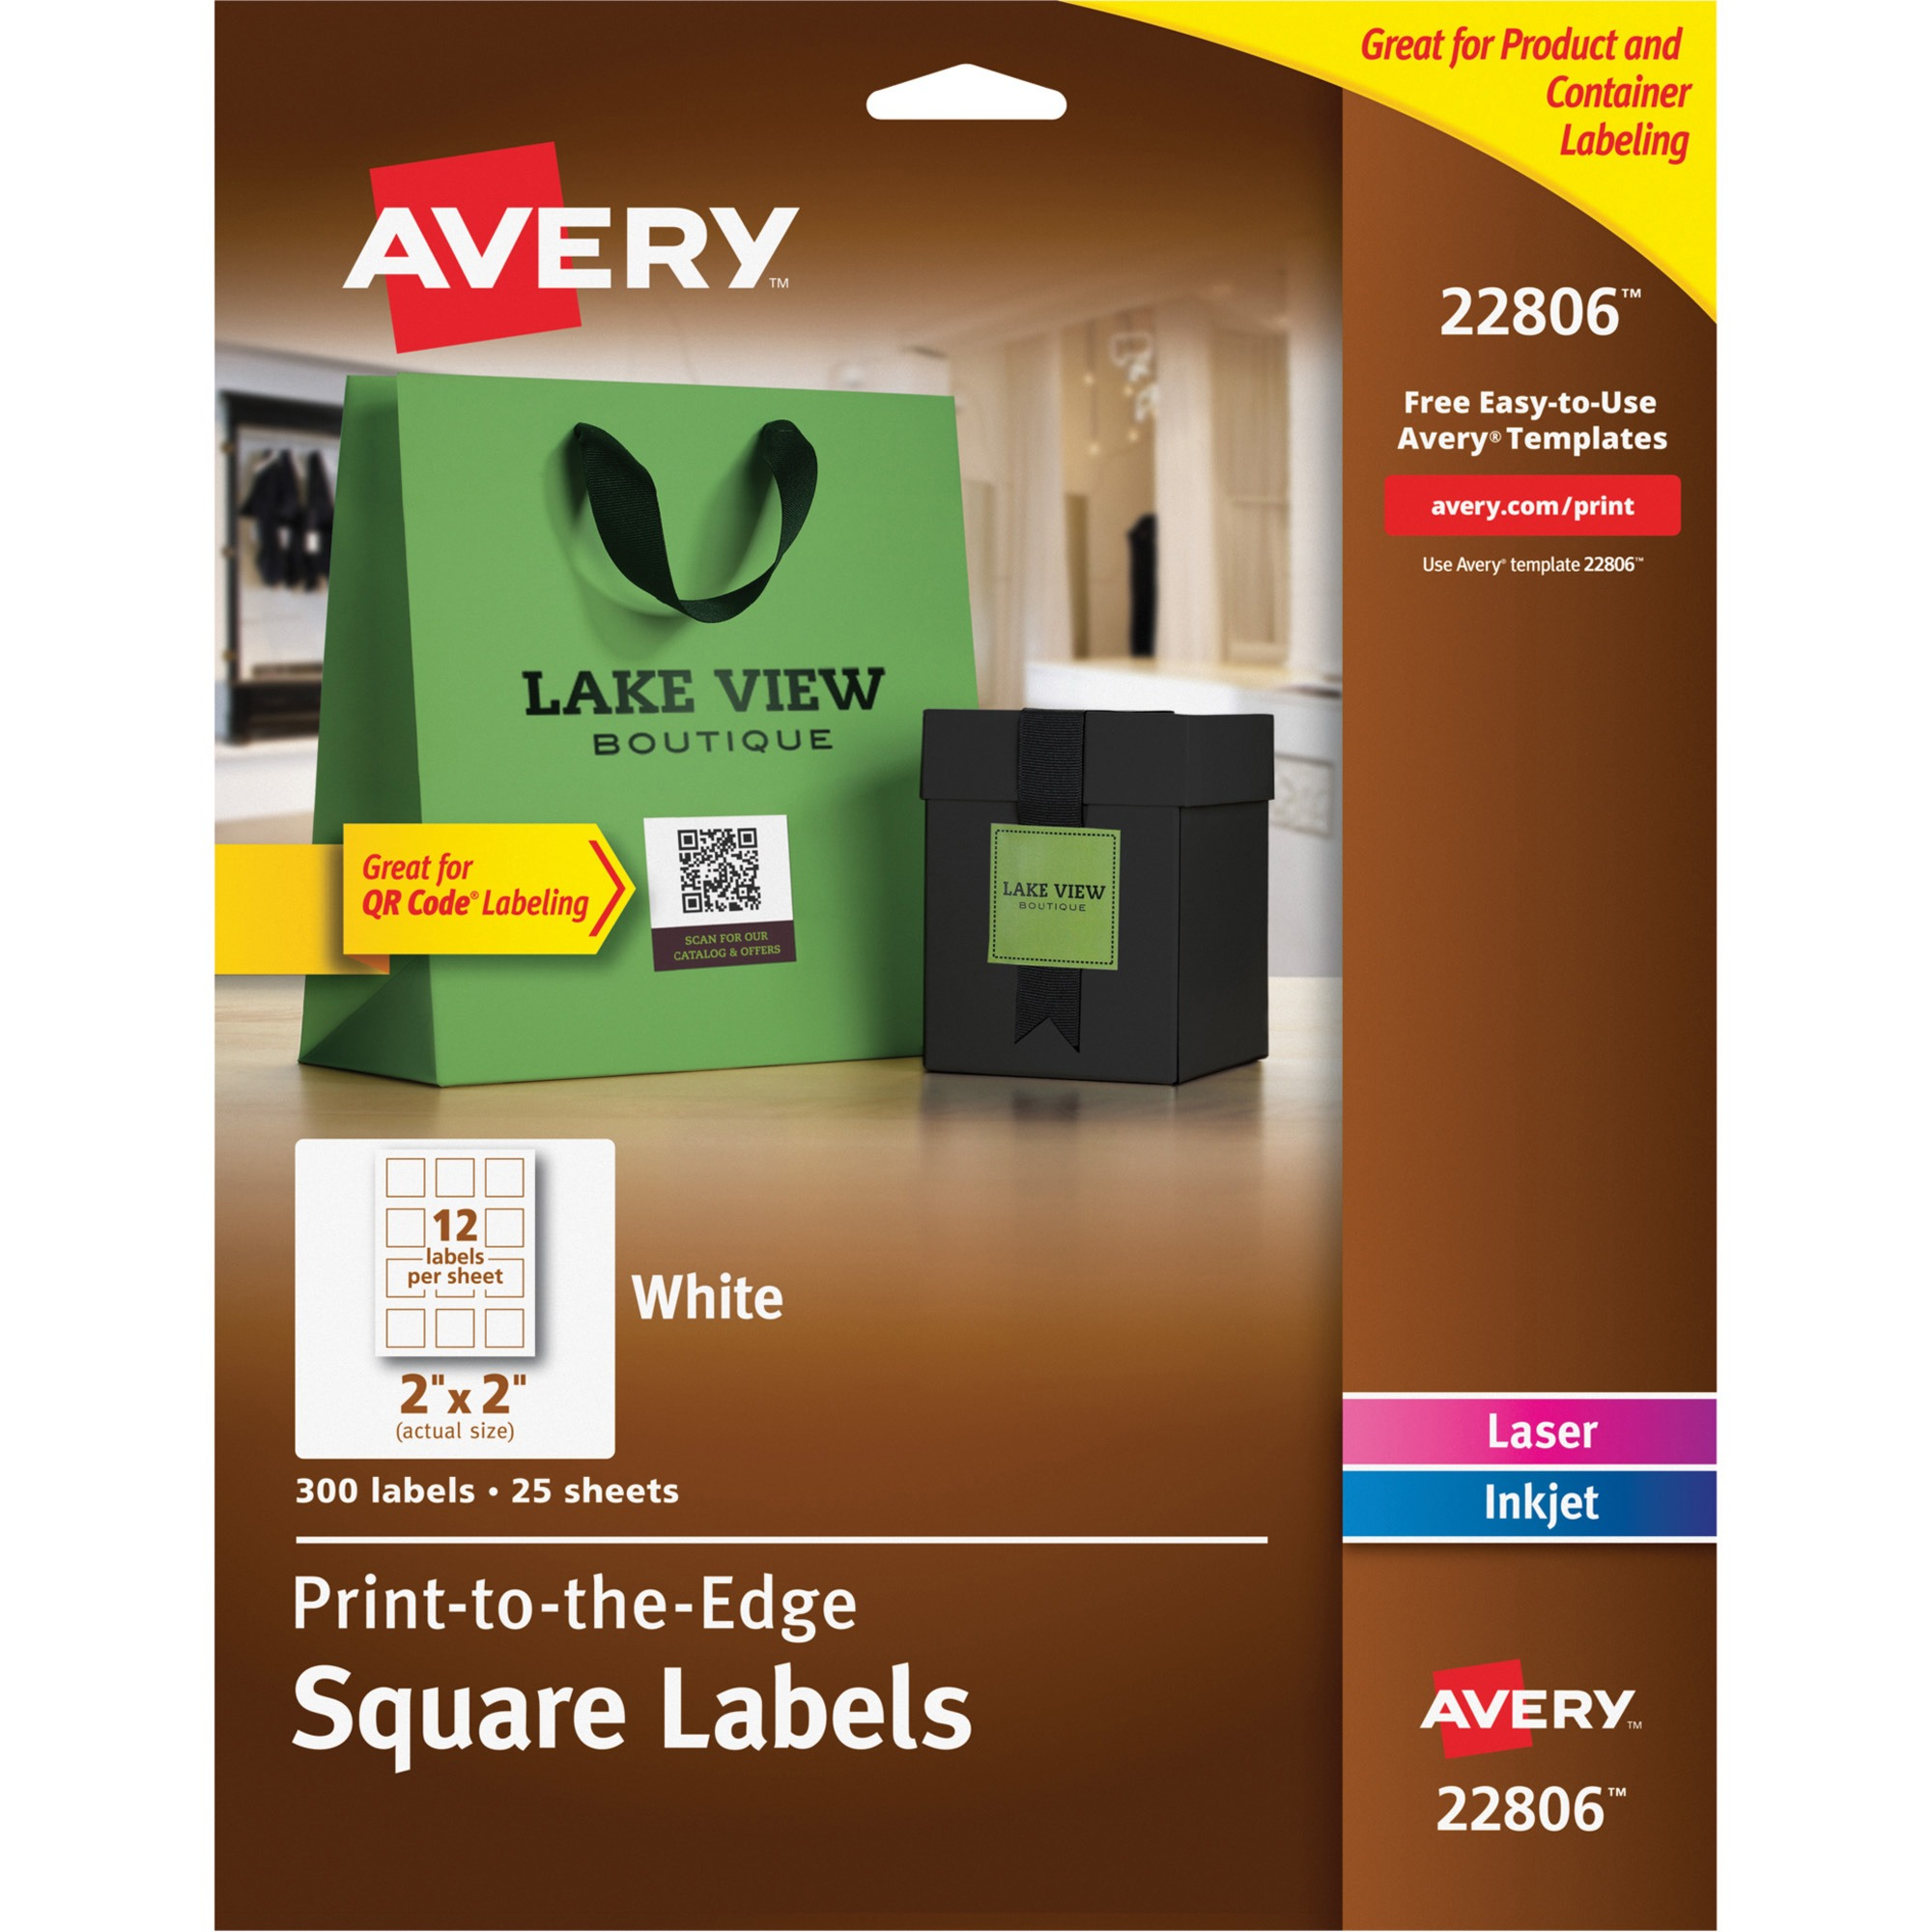 avery print to the edge square labels with trueblock 2 x 2 white 300 count walmartcom